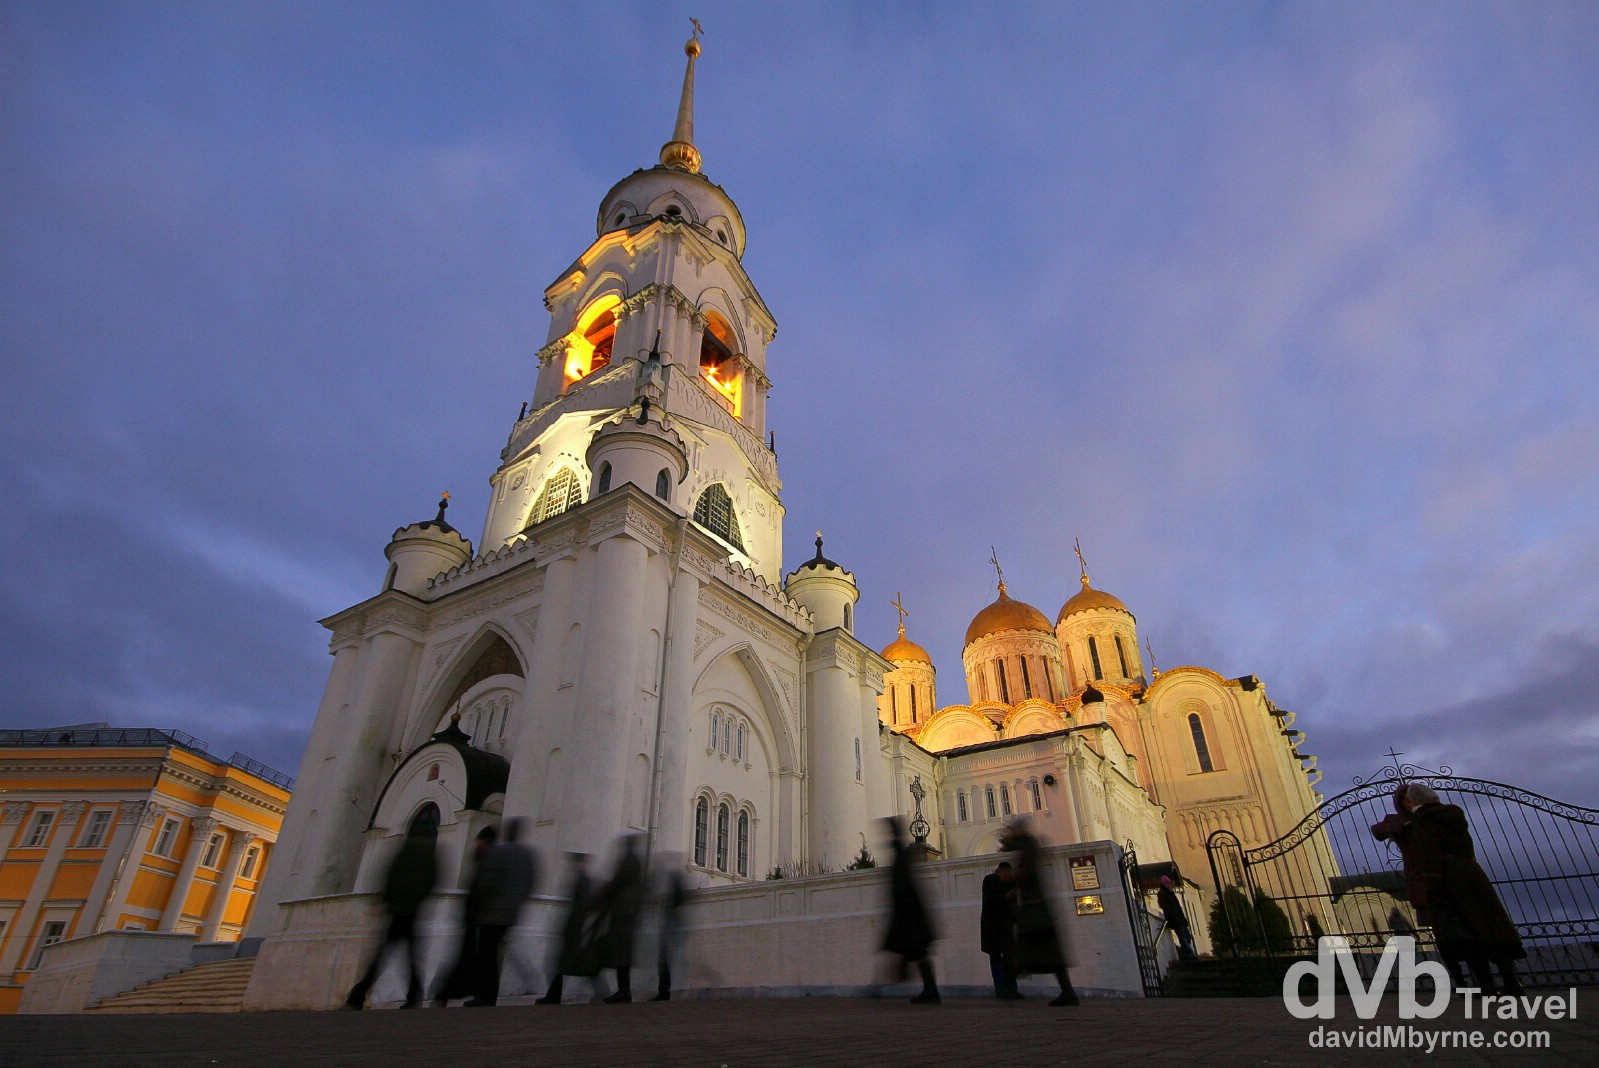 The gleaming white, golden-domed Assumption Cathedral in Vladimir, Russia. November 16th 2012.